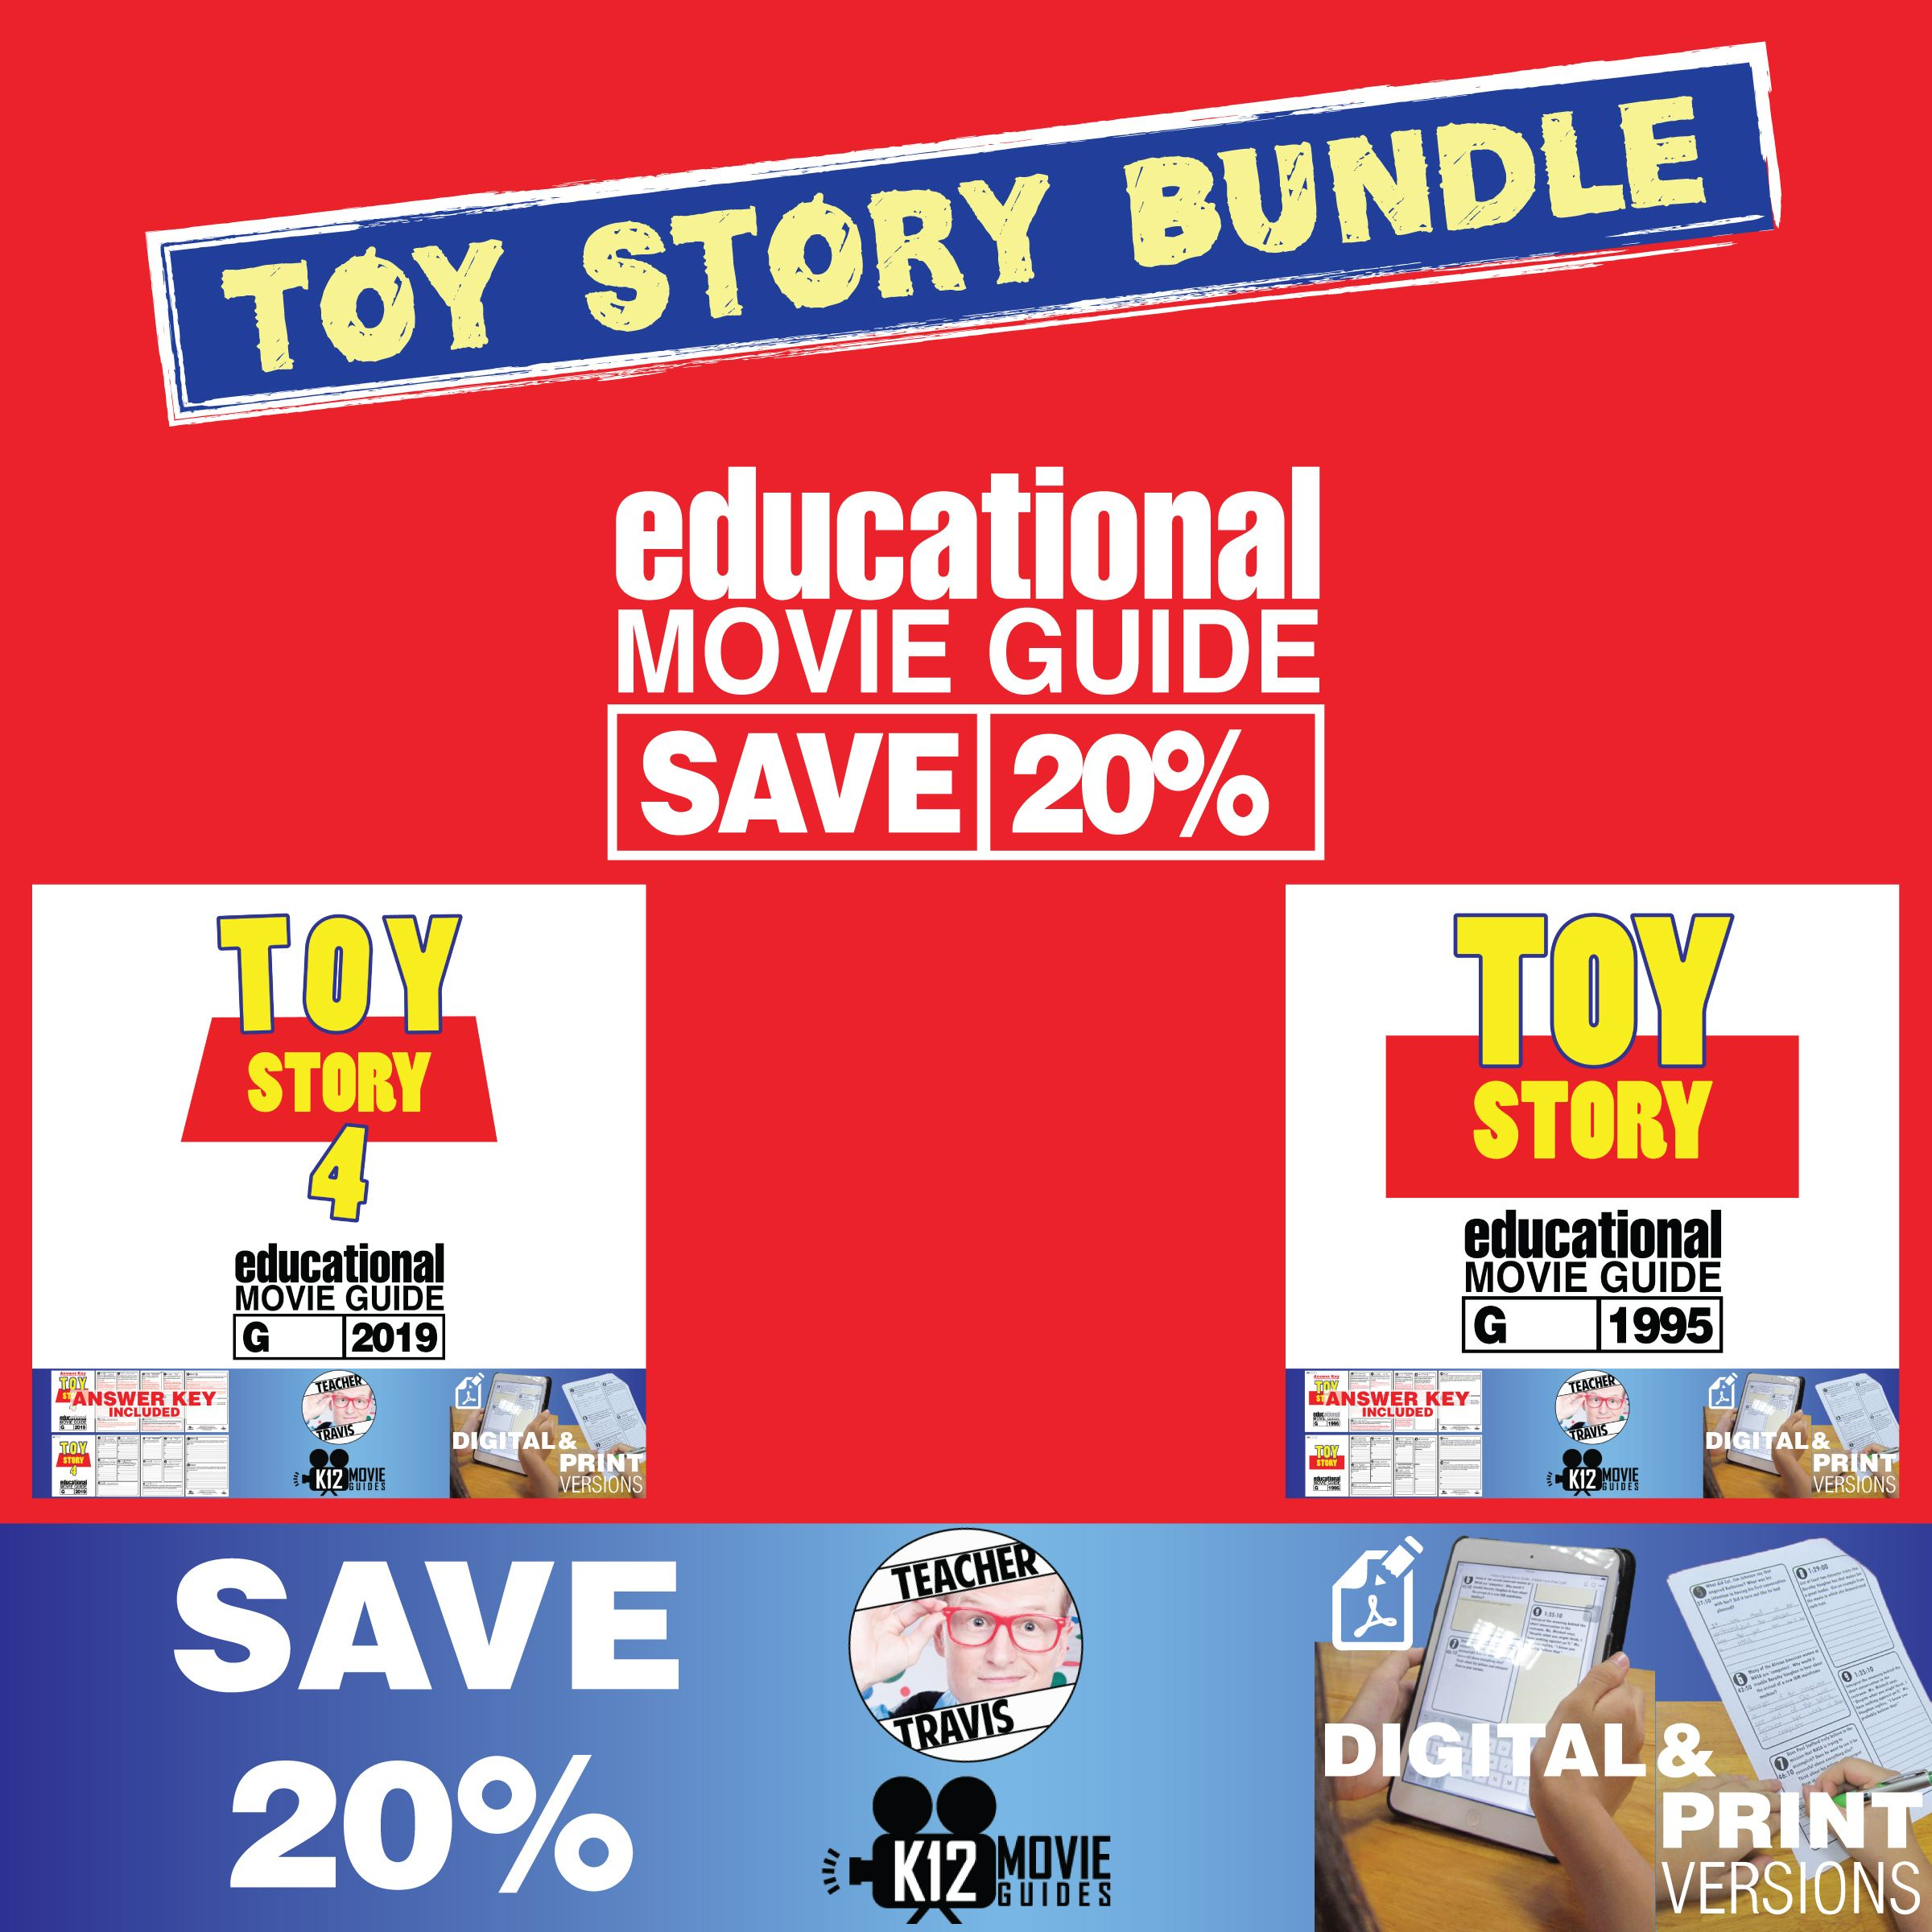 Toy Story Movie Guide